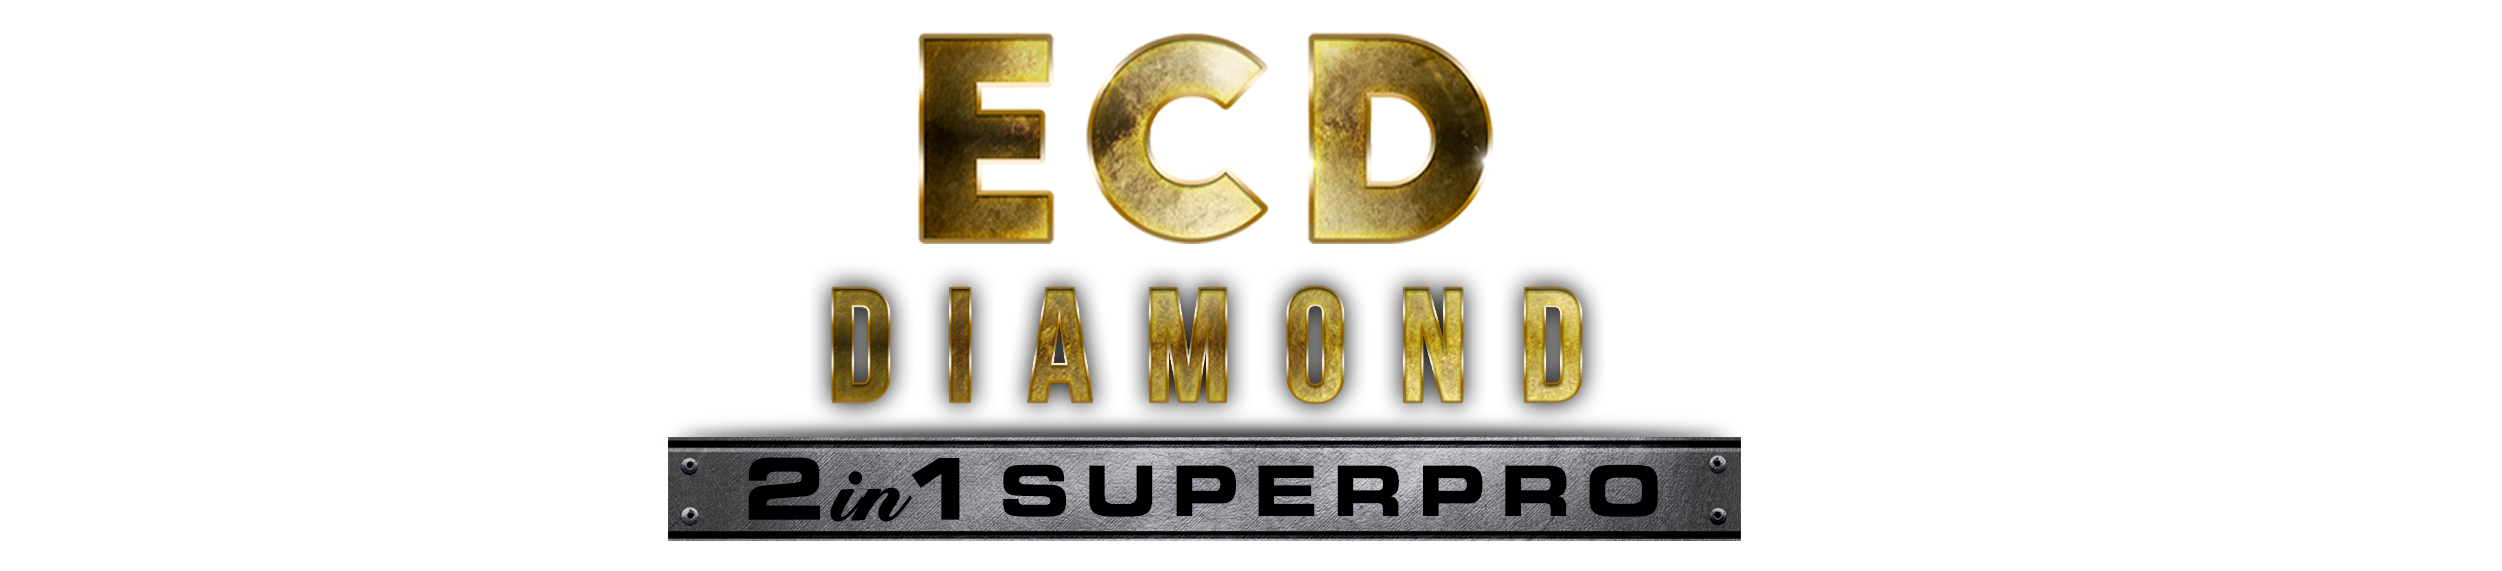 ECD DIAMOND